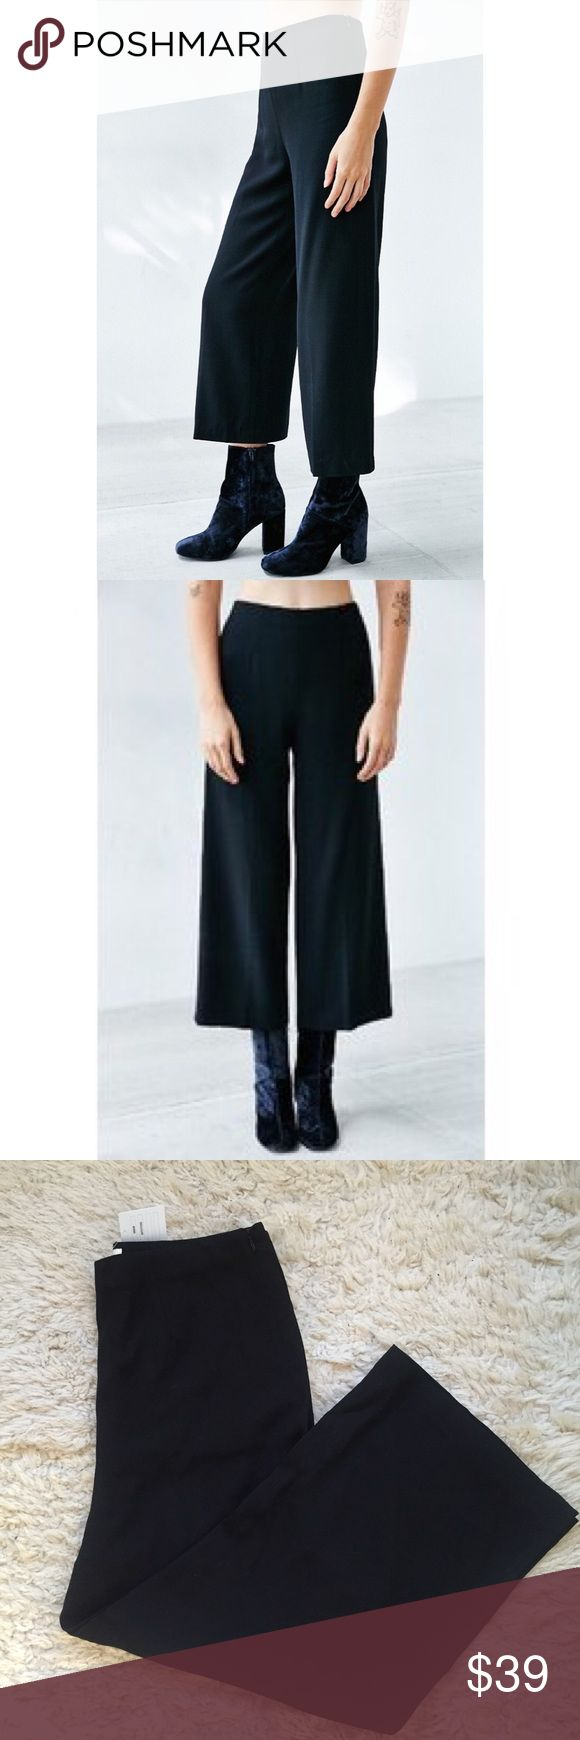 Urban Outfitters Anabel Trouser New with tags black high waisted trouser with side zip Urban Outfitters Pants Trousers